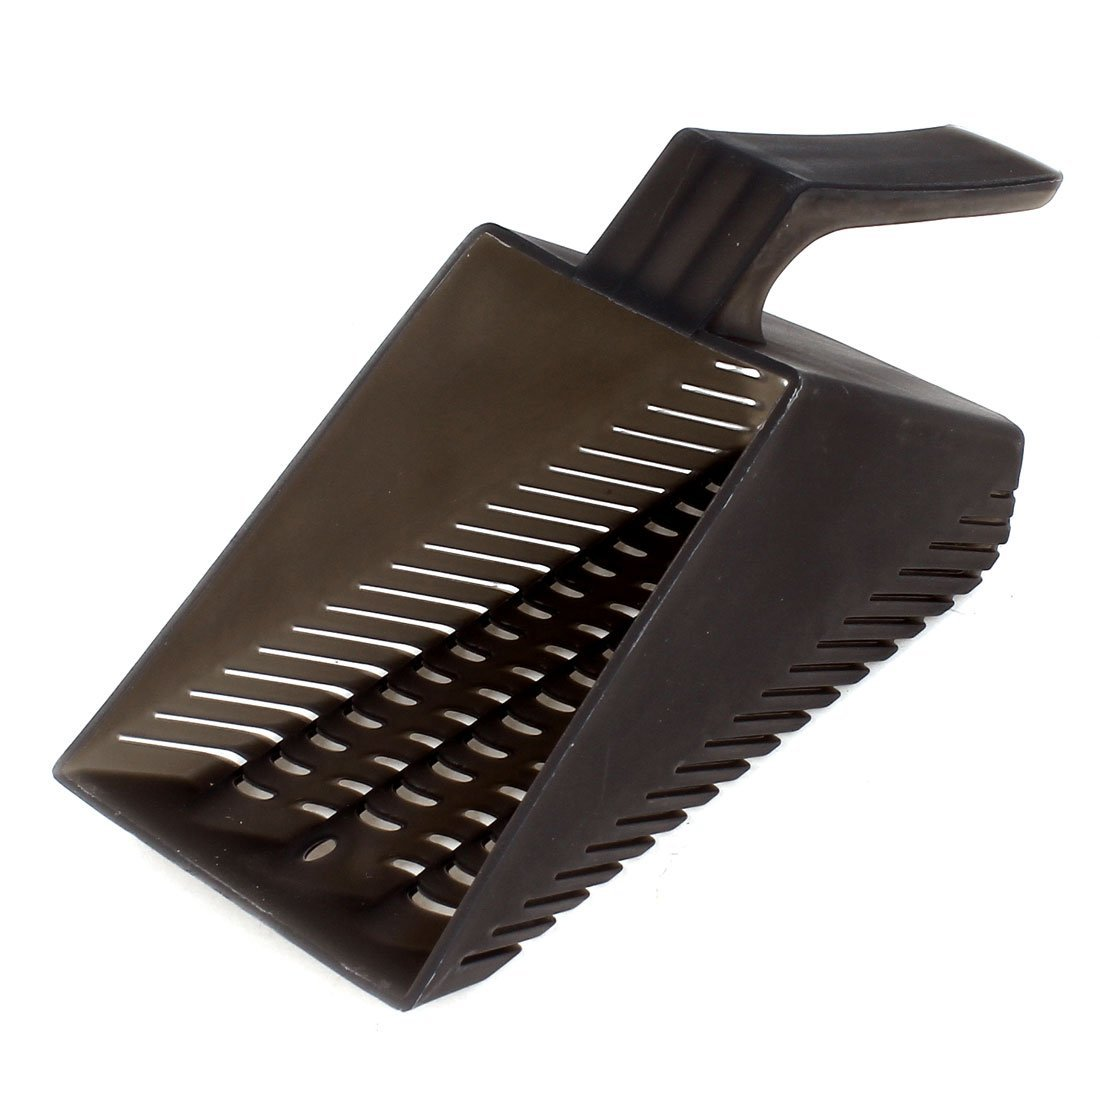 Uxcell Plastic Nonslip Grip Pet Dog Puppy Wastes Trash Litter Scoop, Black a15011500ux0130